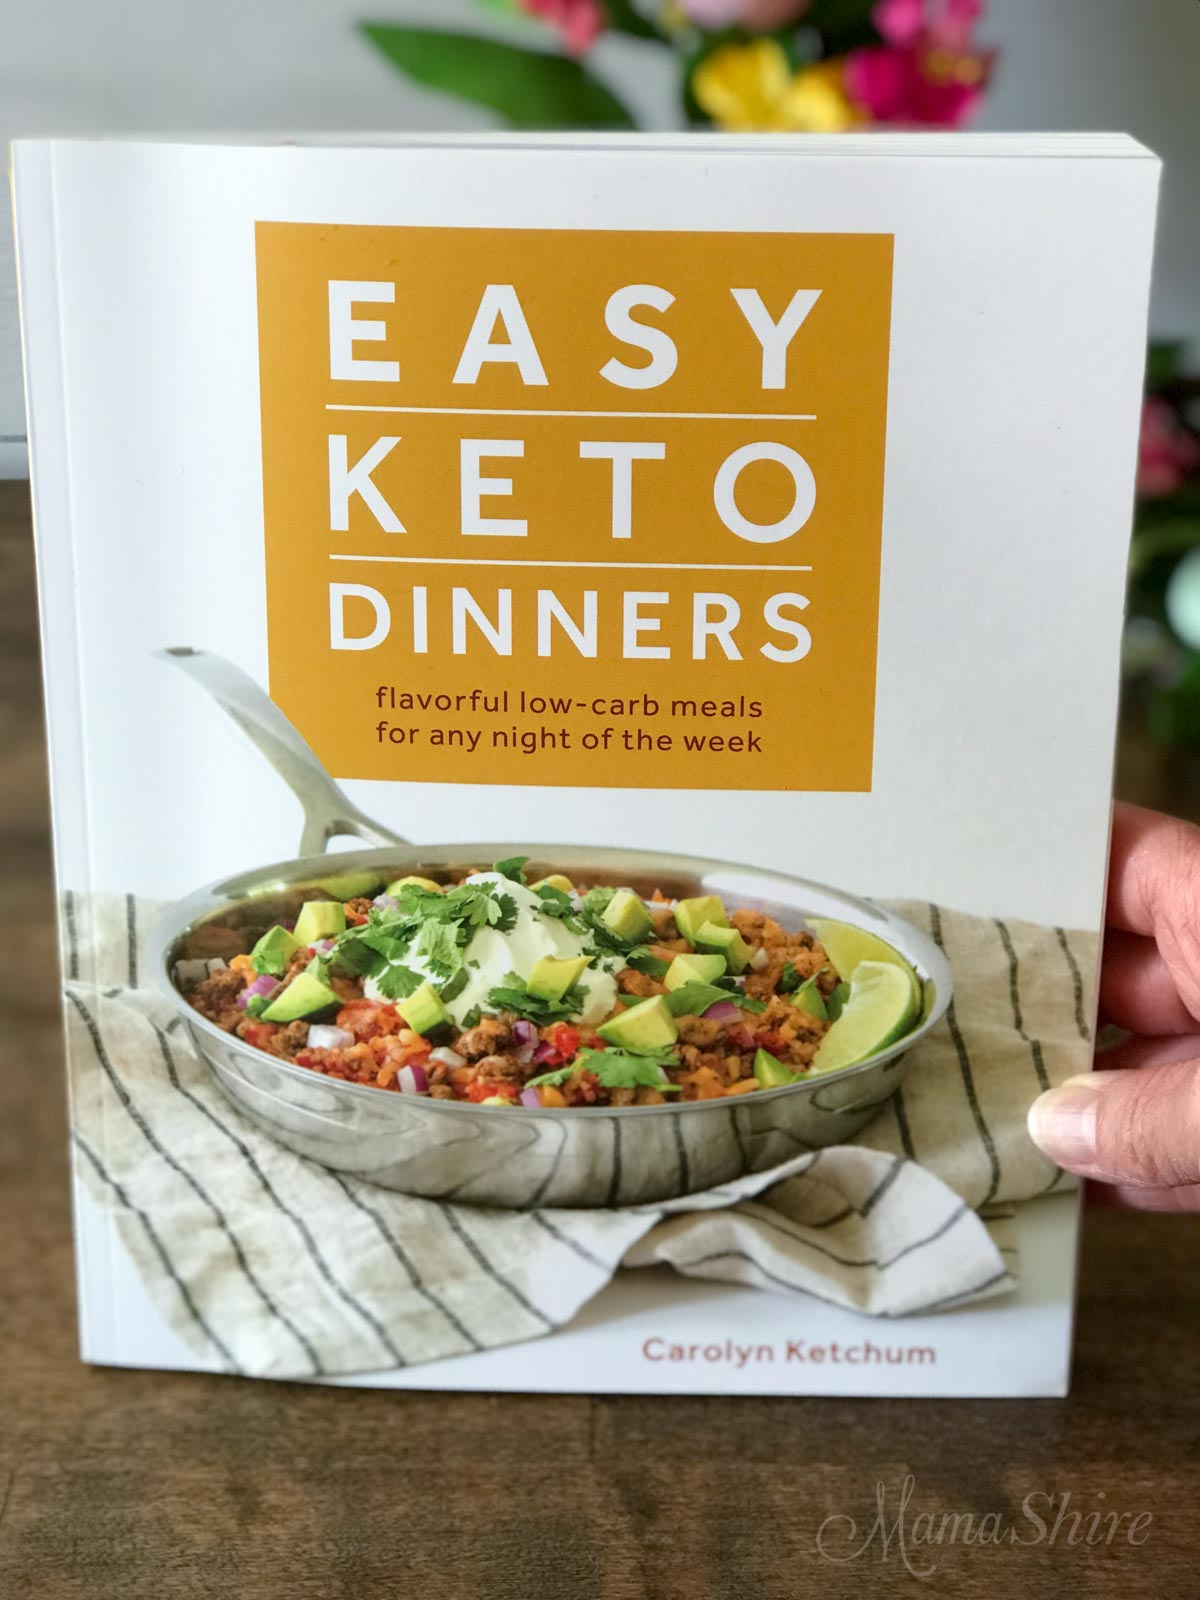 Picture of Carolyn Ketchum's cookbook, Easy Keto Dinners.